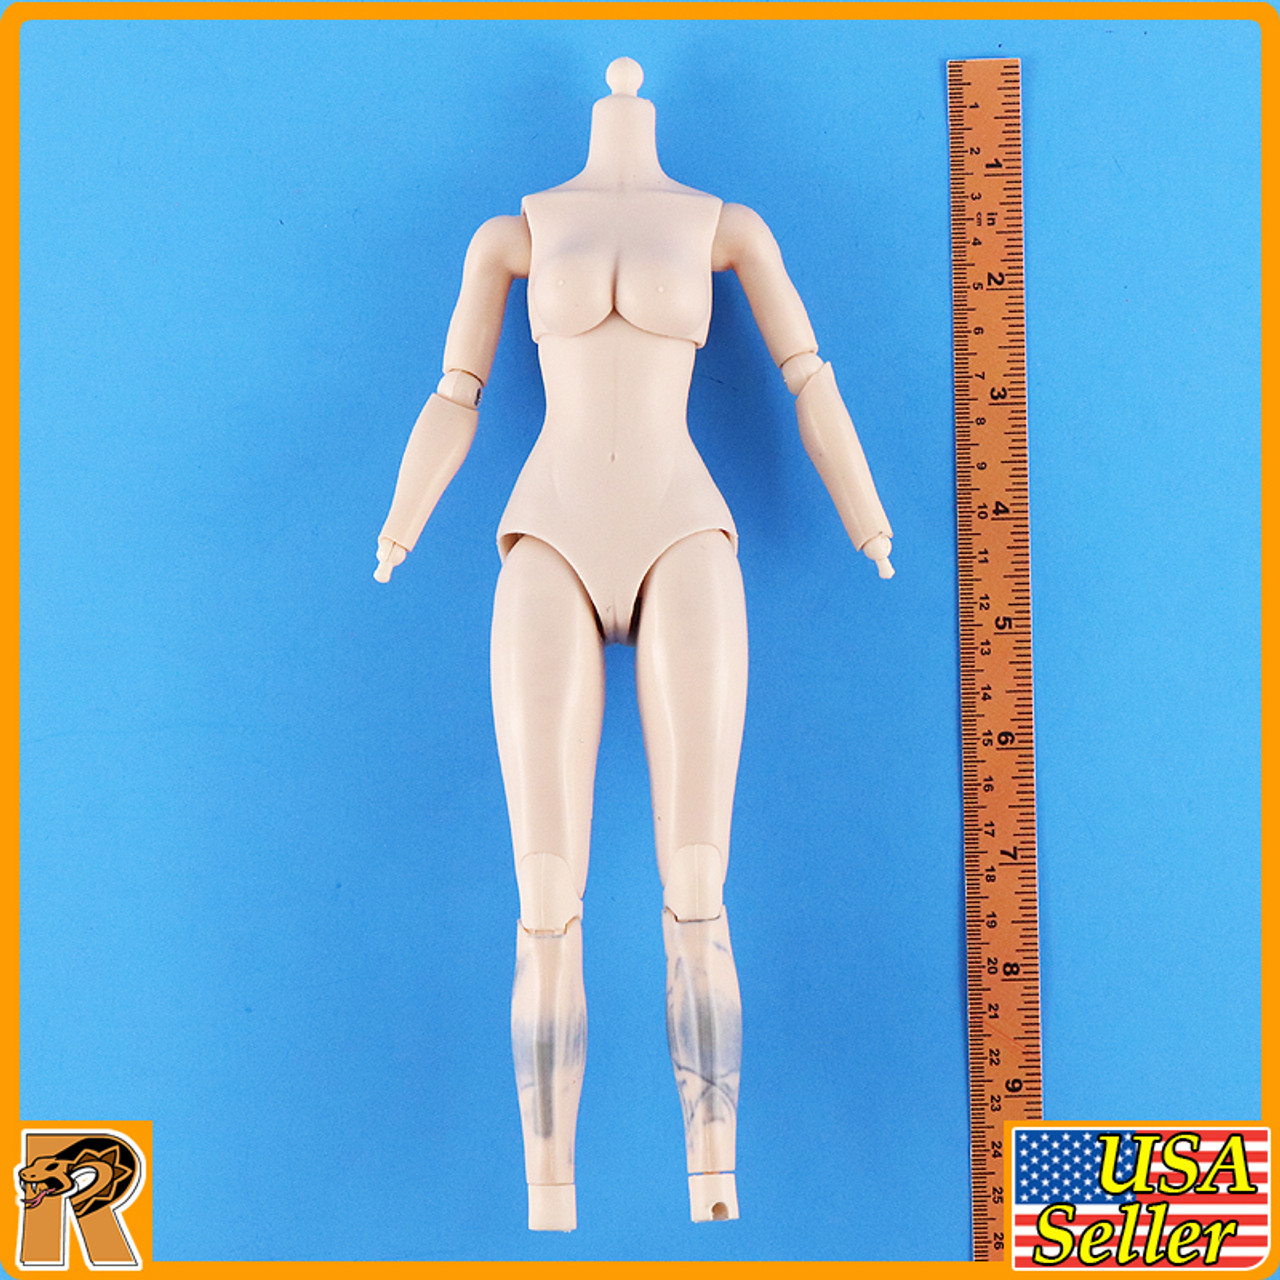 Crown Knight - Female Nude Body *STAINS* - 1/6 Scale -